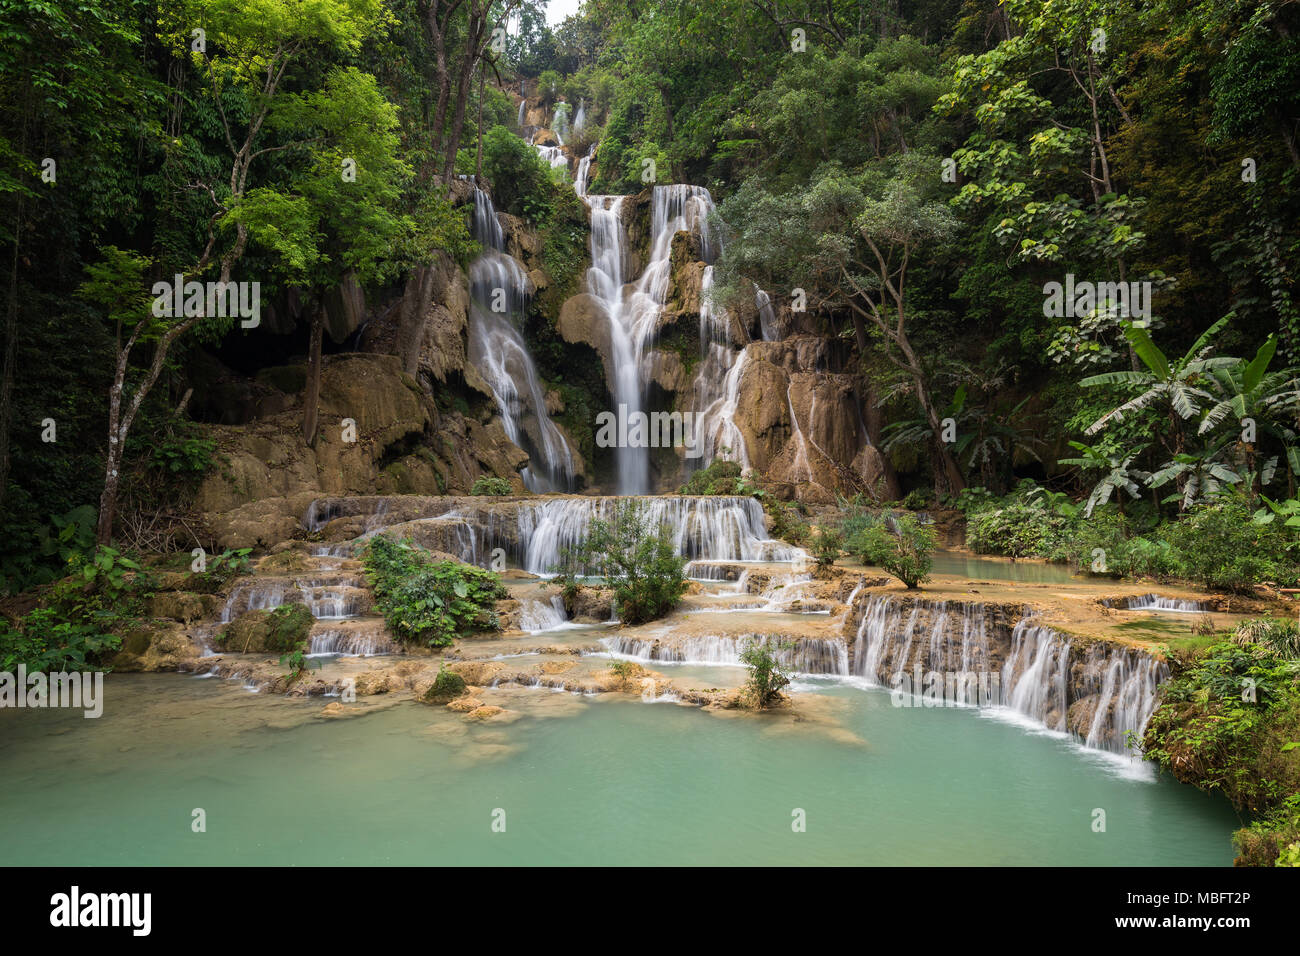 Beautiful view of the main fall at the Tat Kuang Si Waterfalls near Luang Prabang in Laos. - Stock Image